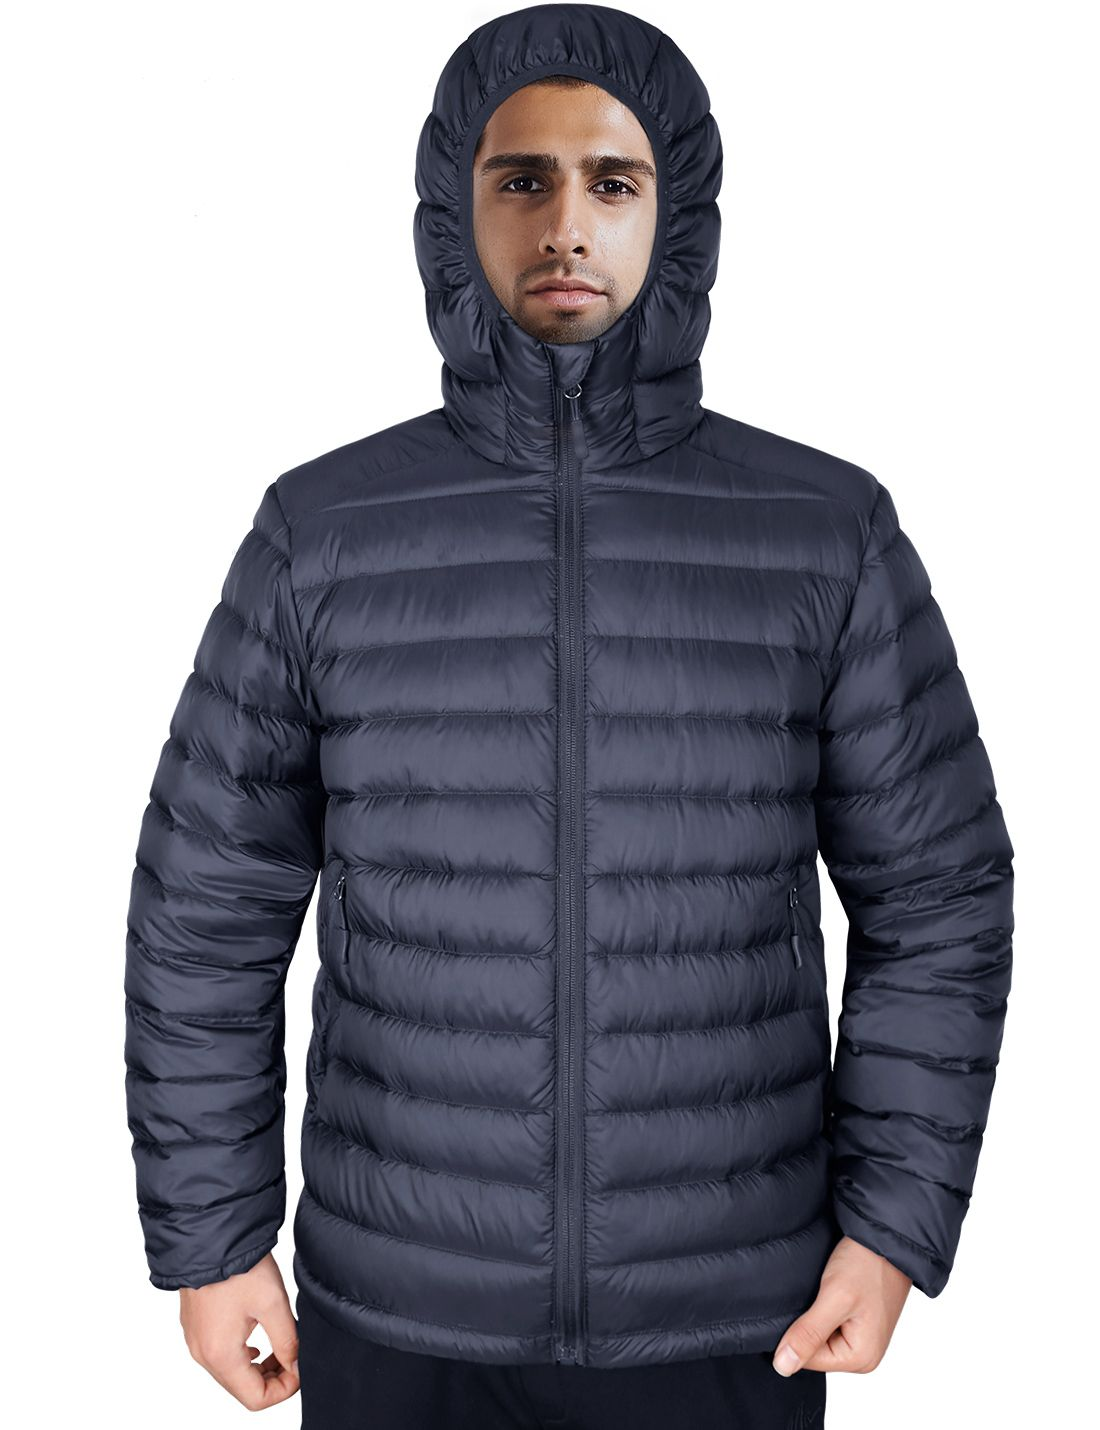 Lesmart Men S Hooded Puffer Down Coat Mens Golf Outfit Down Jacket Jackets